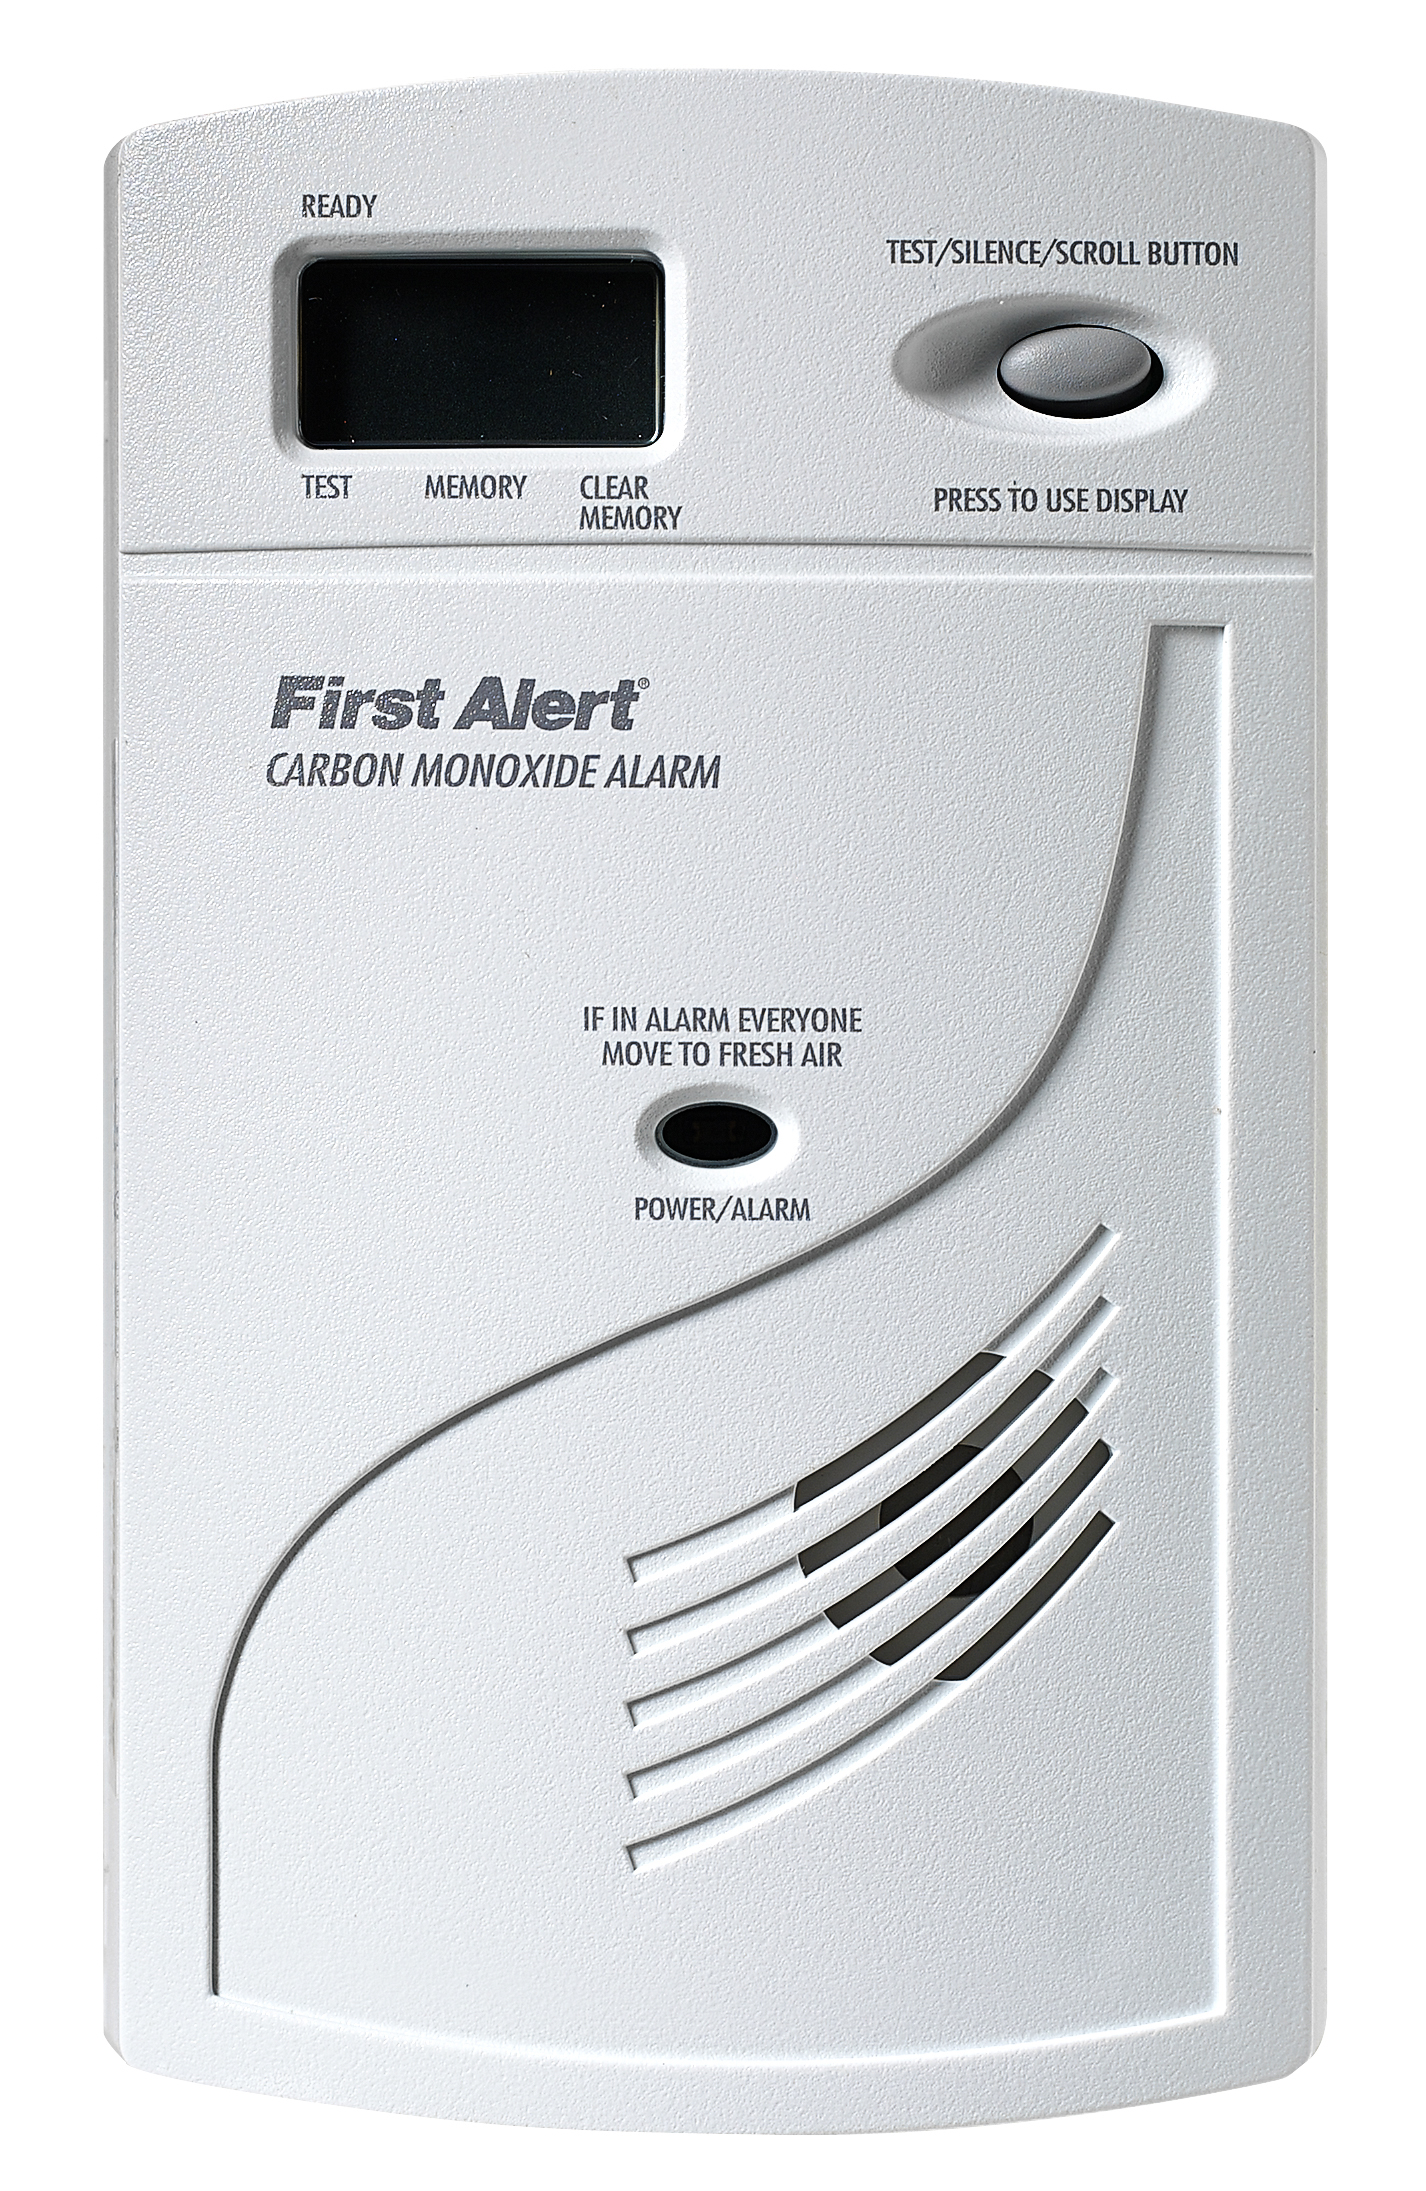 First Alert Home Security System Manual Images